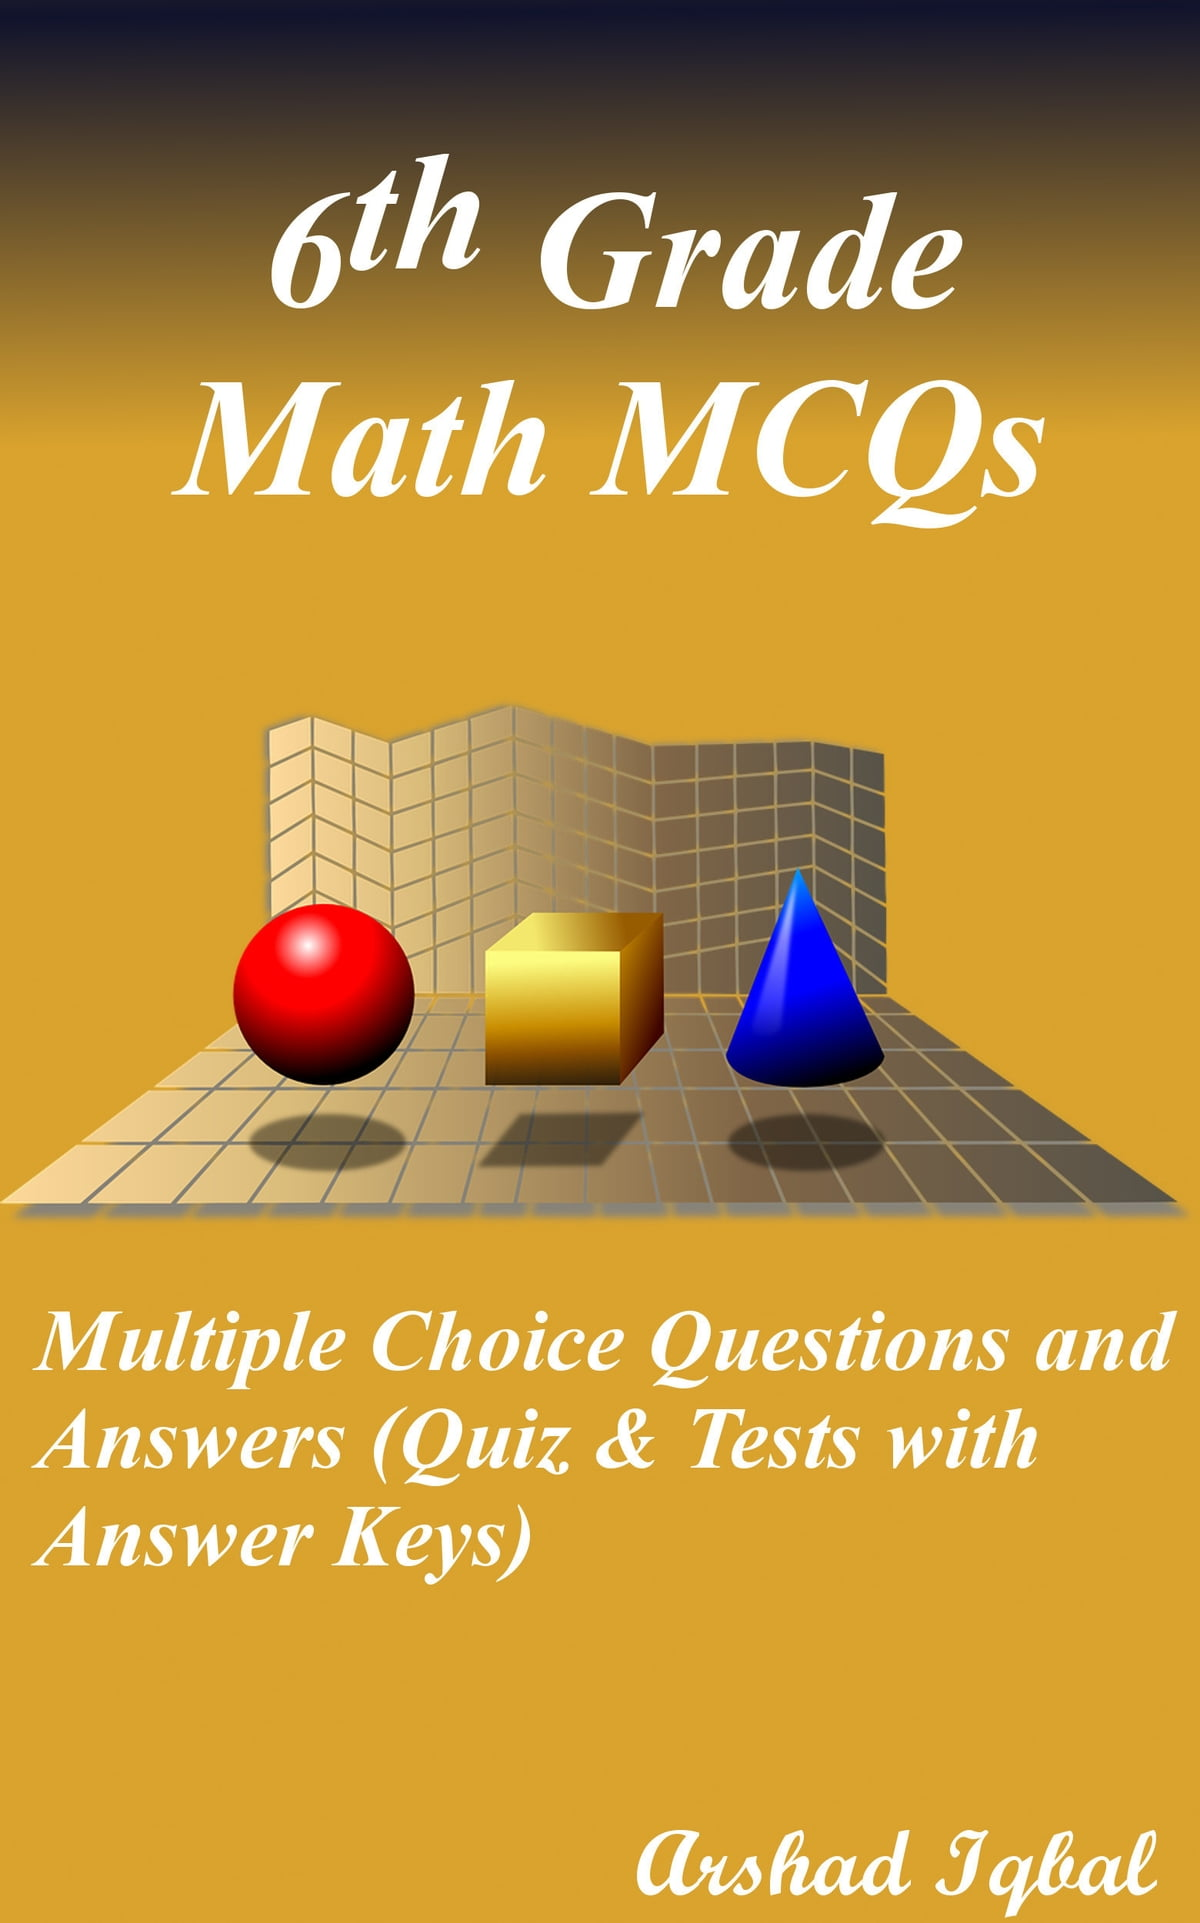 6th Grade Math MCQs Multiple Choice Questions And Answers Quiz Tests With Answer Keys Ebook By Arshad Iqbal Rakuten Kobo